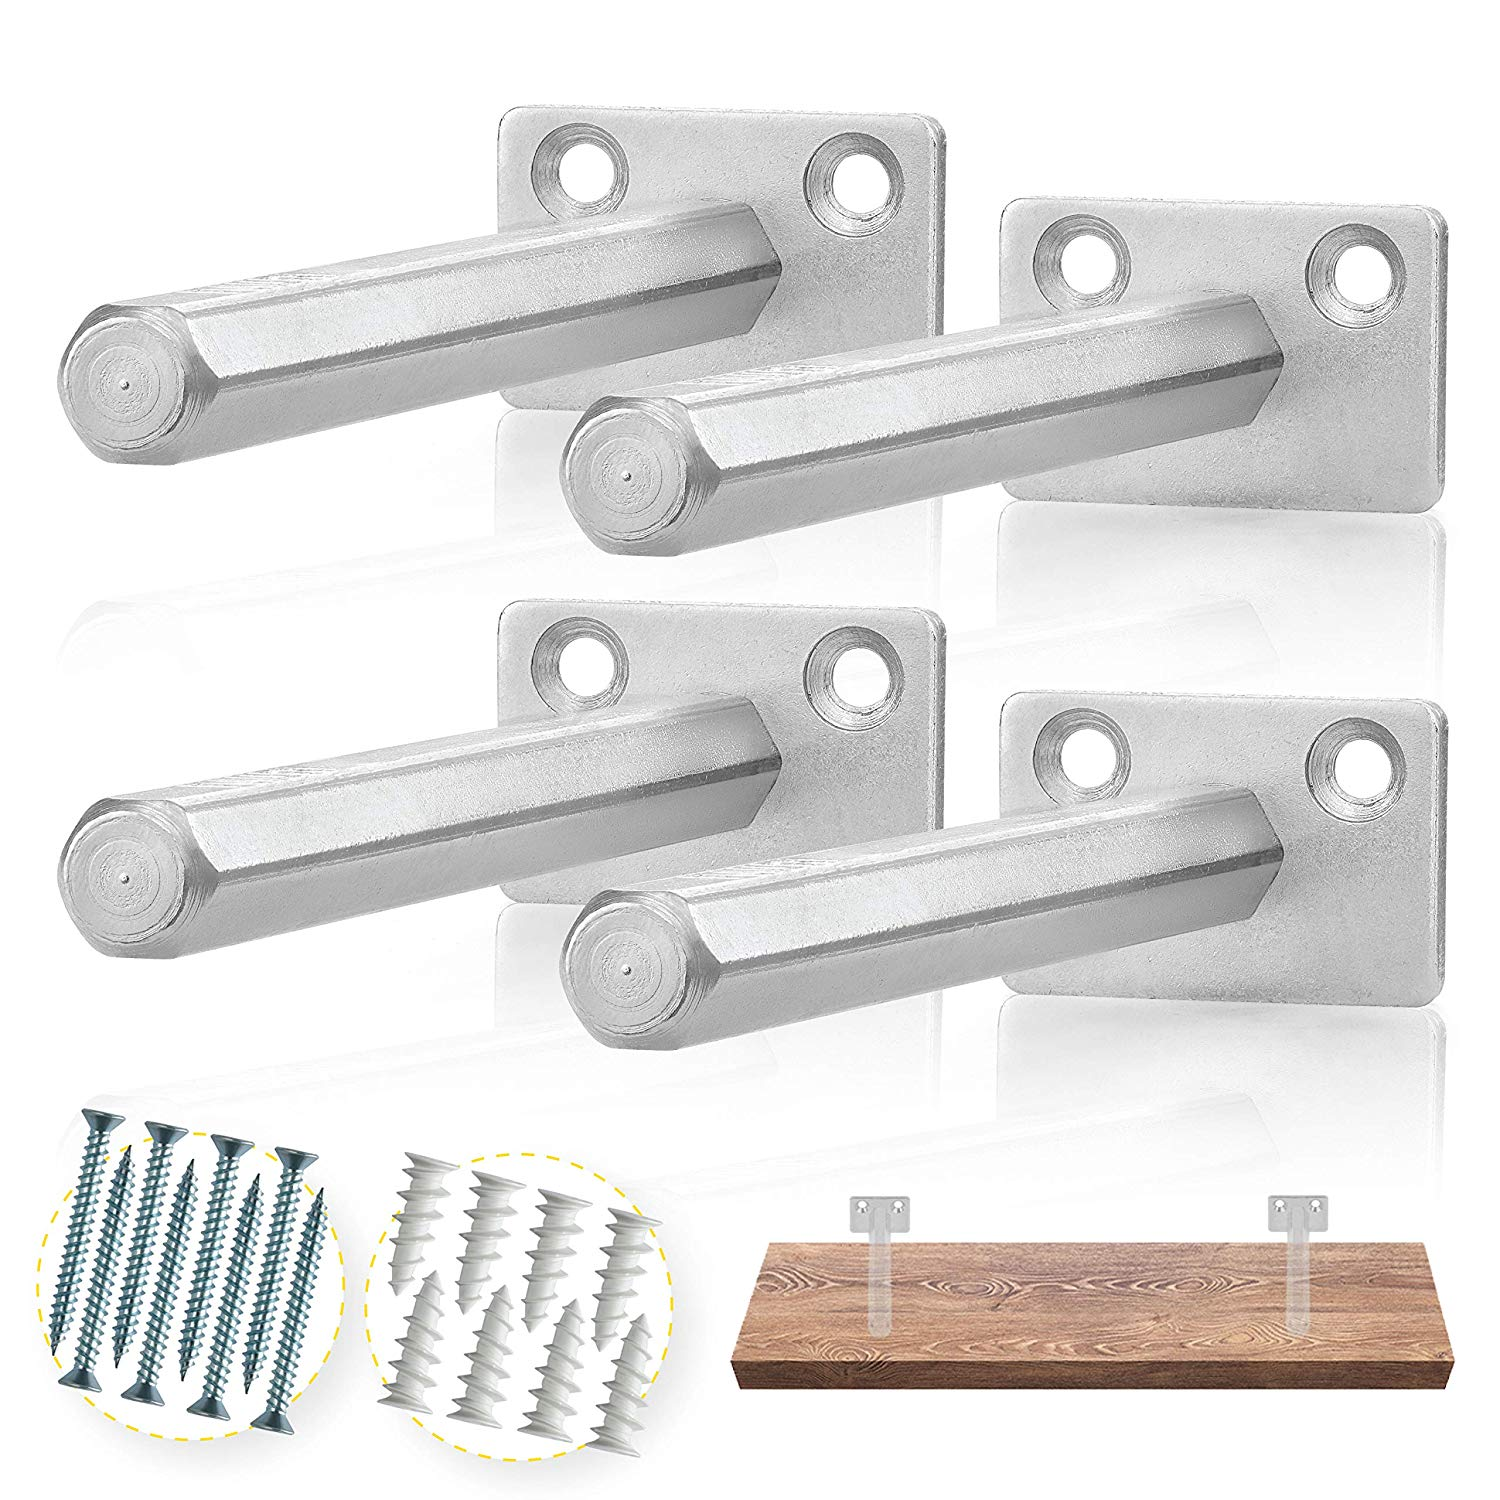 batoda floating shelf bracket pcs galvanized steel xuzl concealed support brackets hidden blind supports for wood shelves small square coat rack furniture tall narrow shoe storage